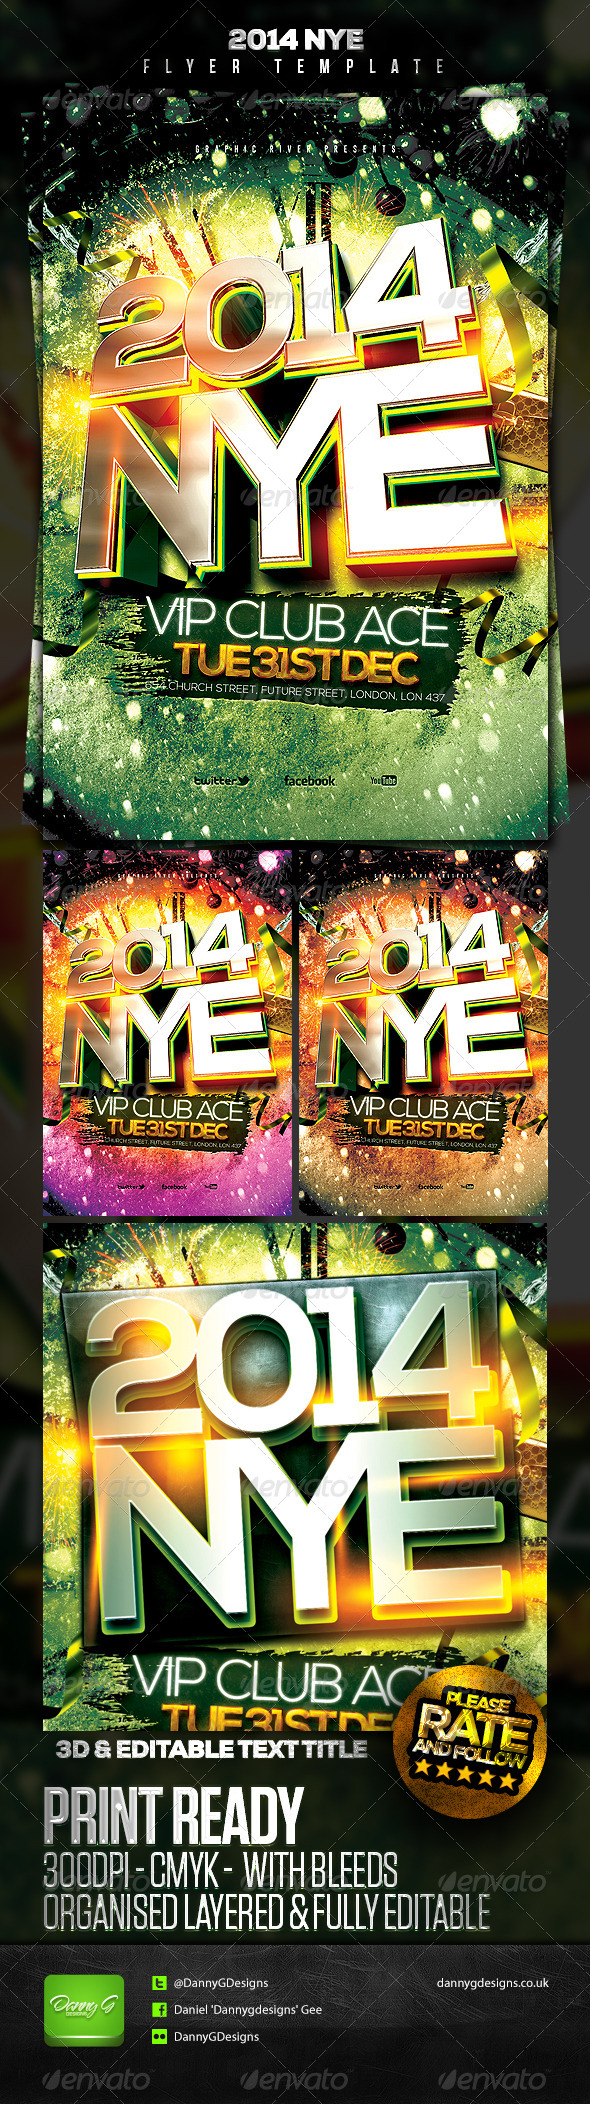 2014 NYE Flyer Template 2 - Clubs & Parties Events